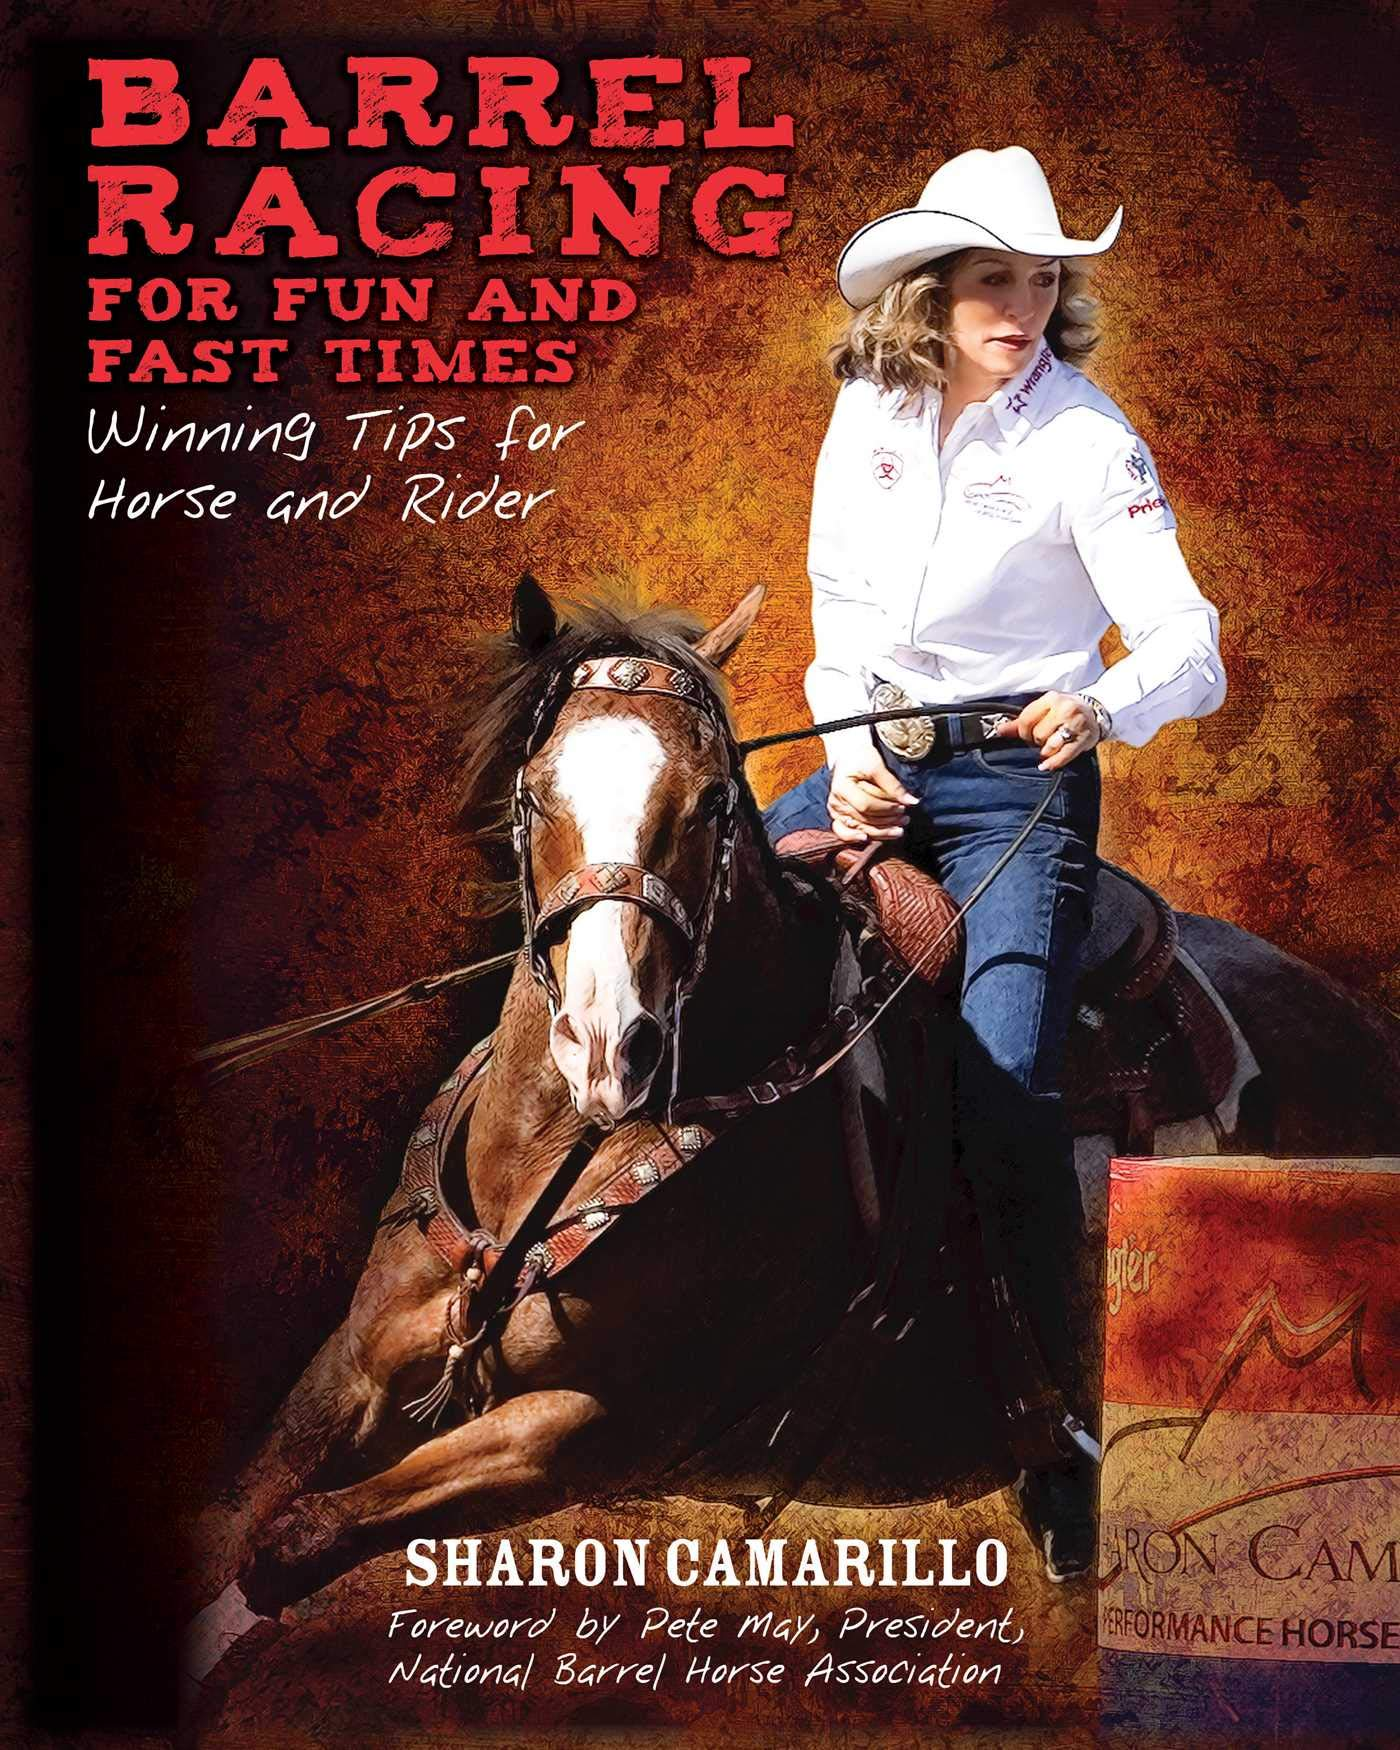 Barrel Racing for Fun and Fast Times: Winning Tips for Horse and Rider by Skyhorse